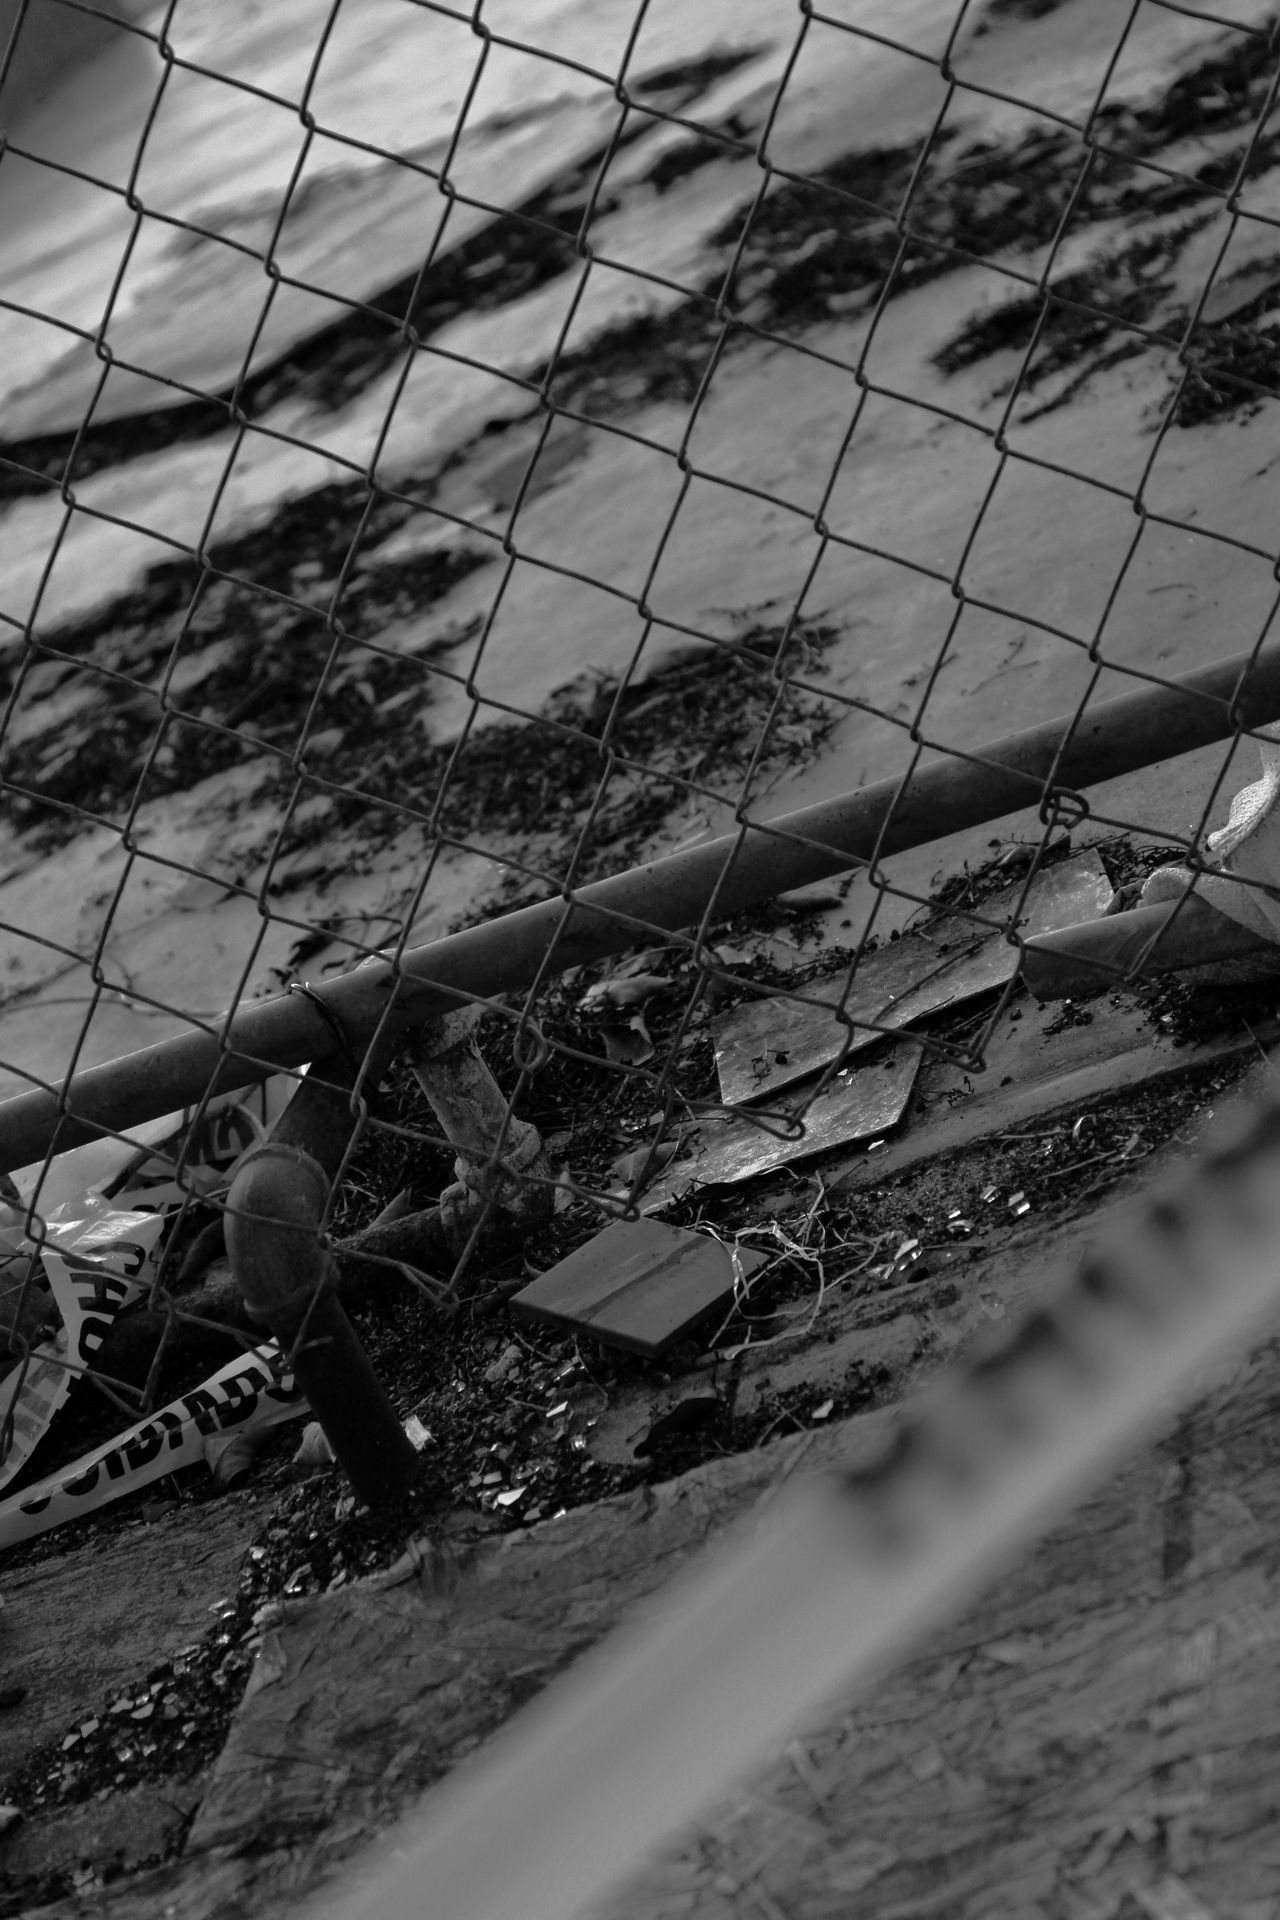 After The Fire Behind Yellow Tape Black & White Chain Link